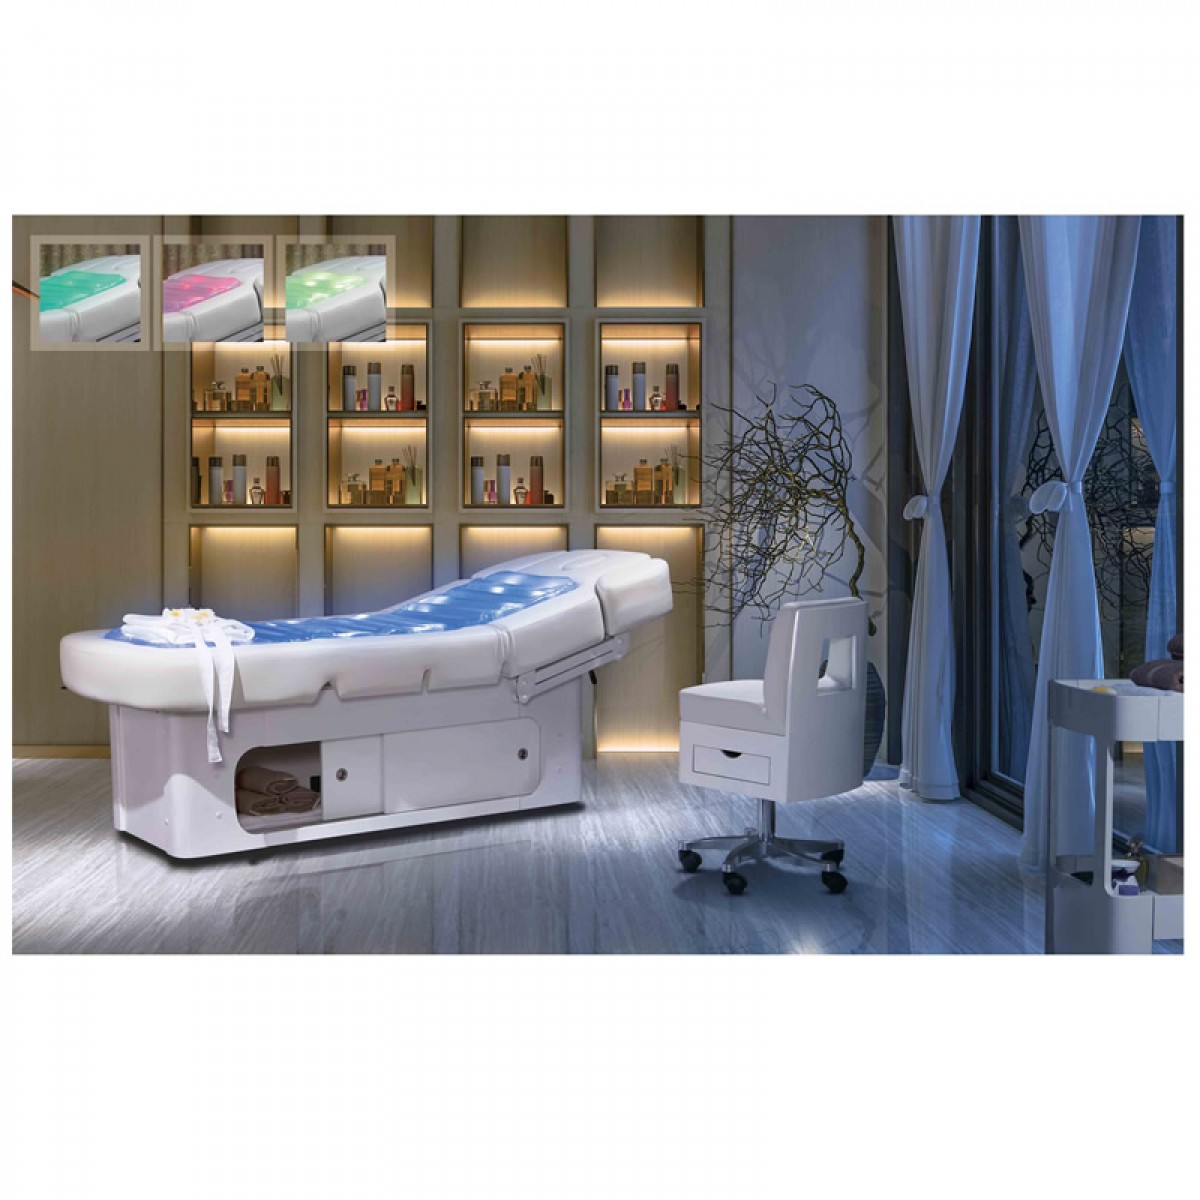 Good price thermal electric water massage bed with Heating and LED Ligh